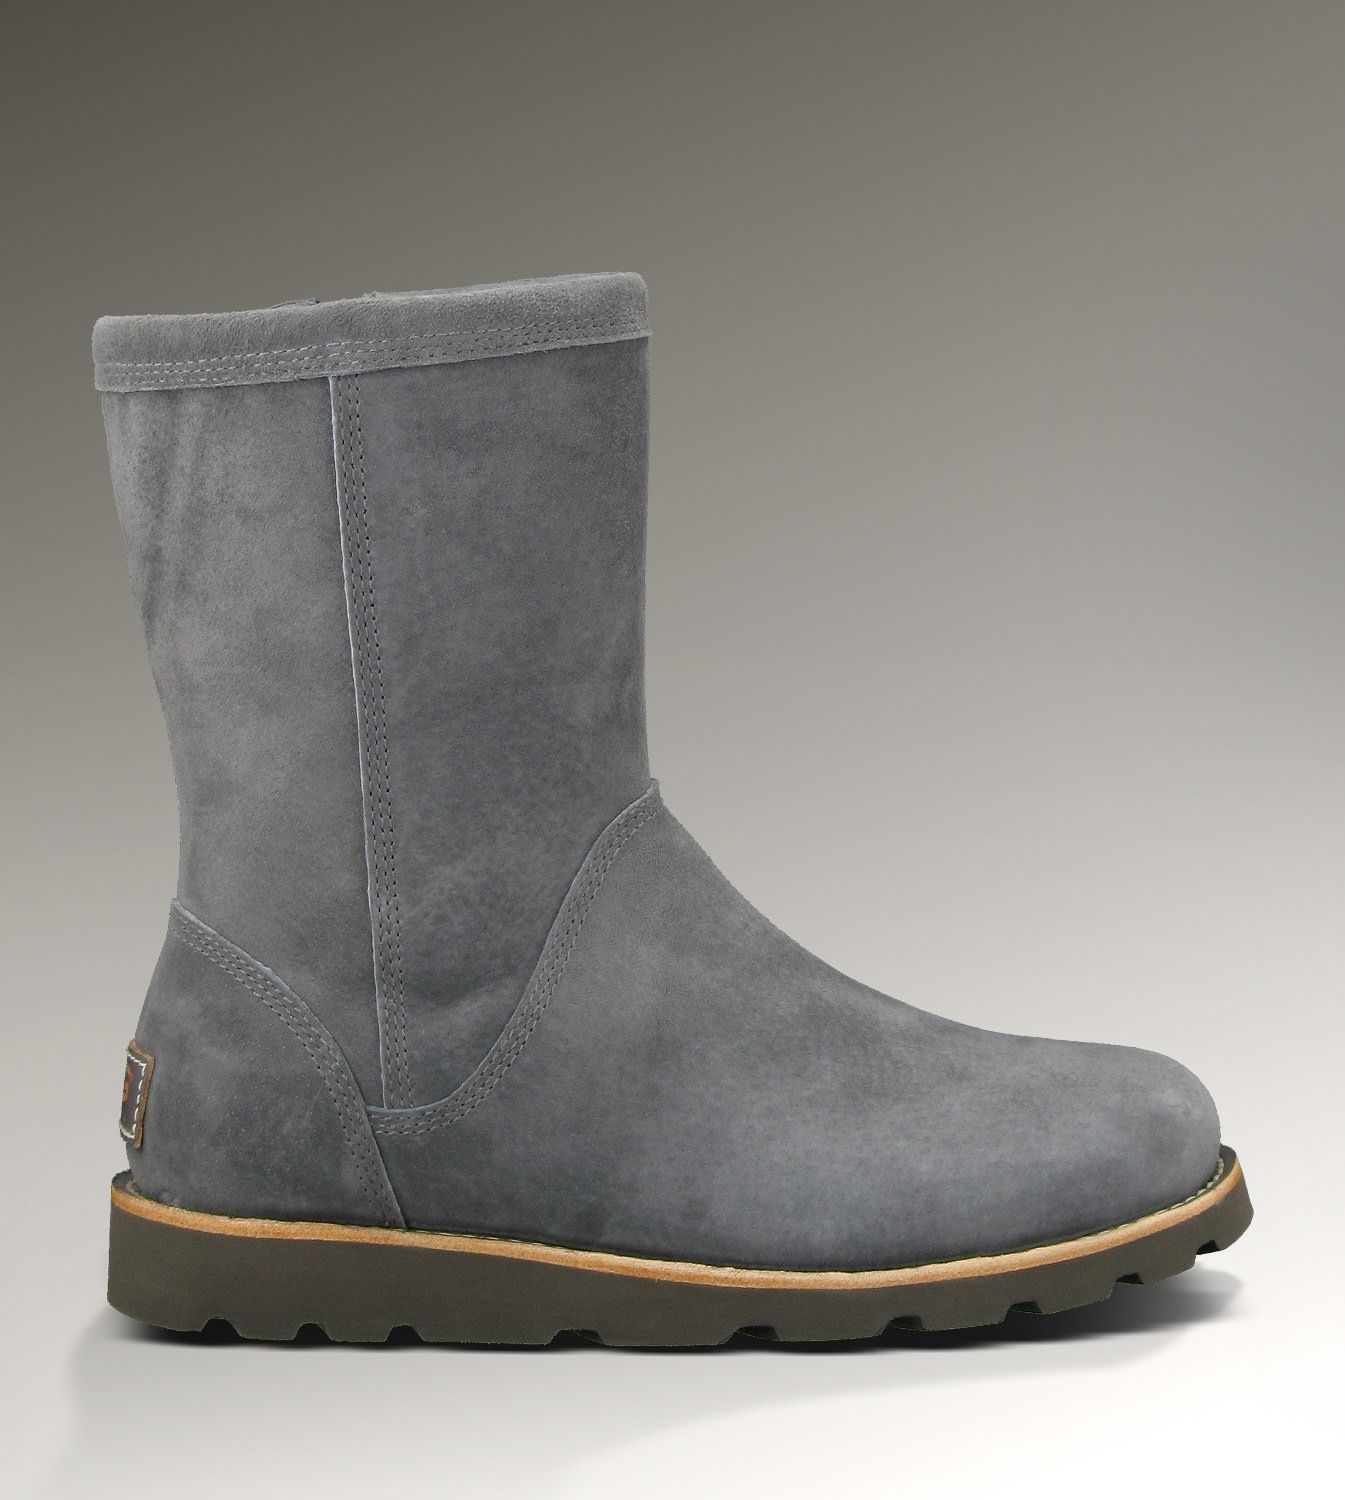 Waterproof winter boots, Boots, Ugg boots